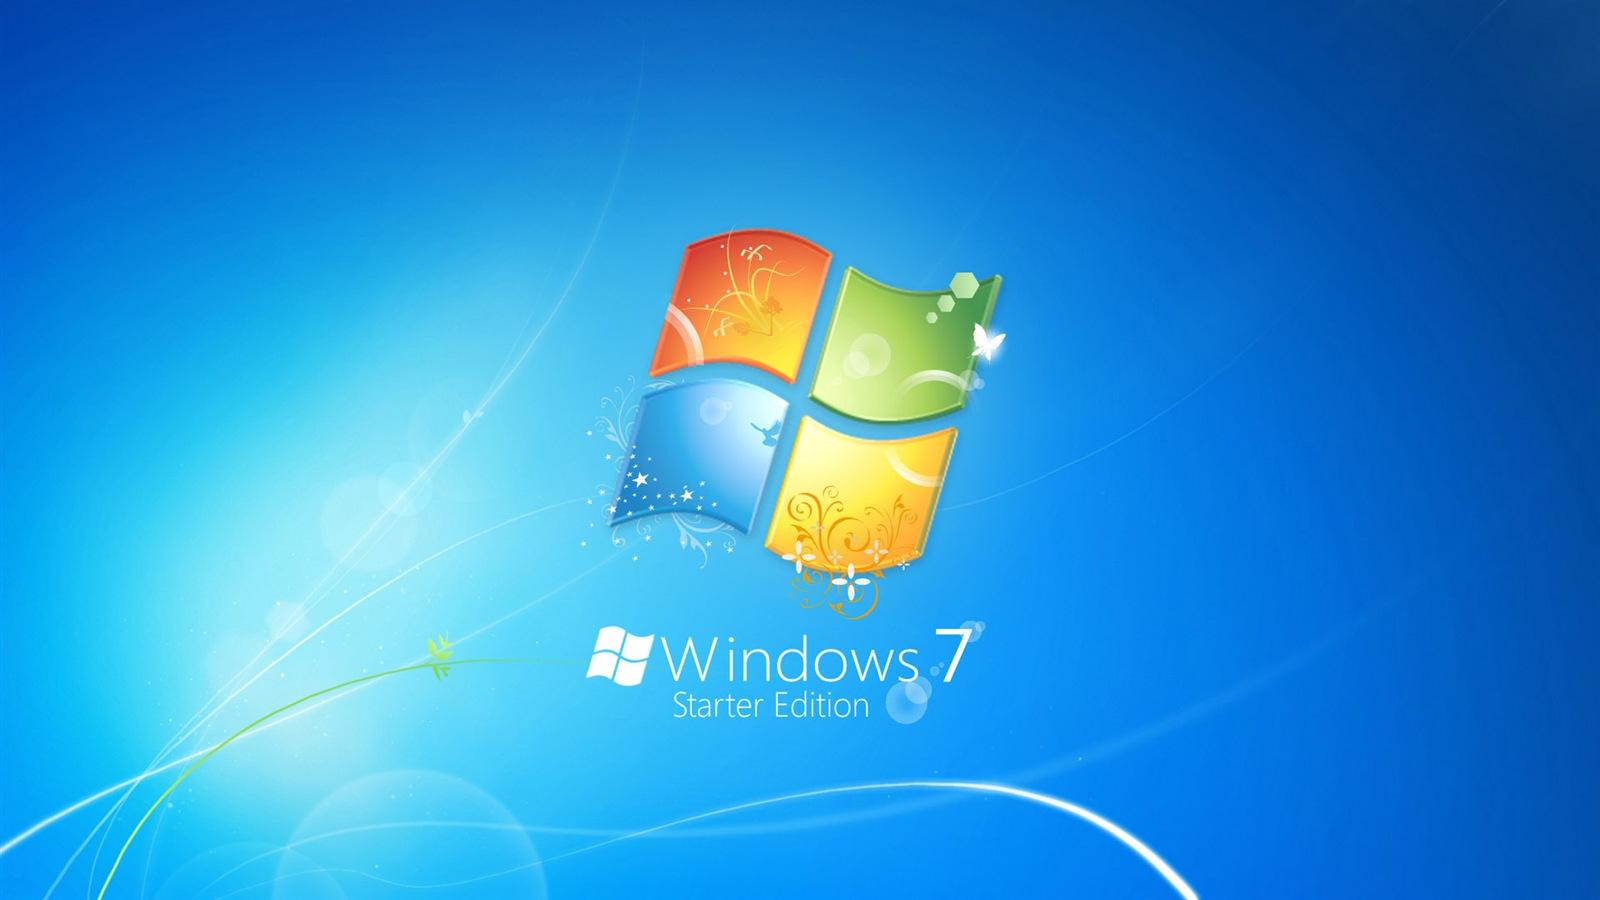 Android Logo Windows 7 HD Wallpapers - Wallpaper Cave